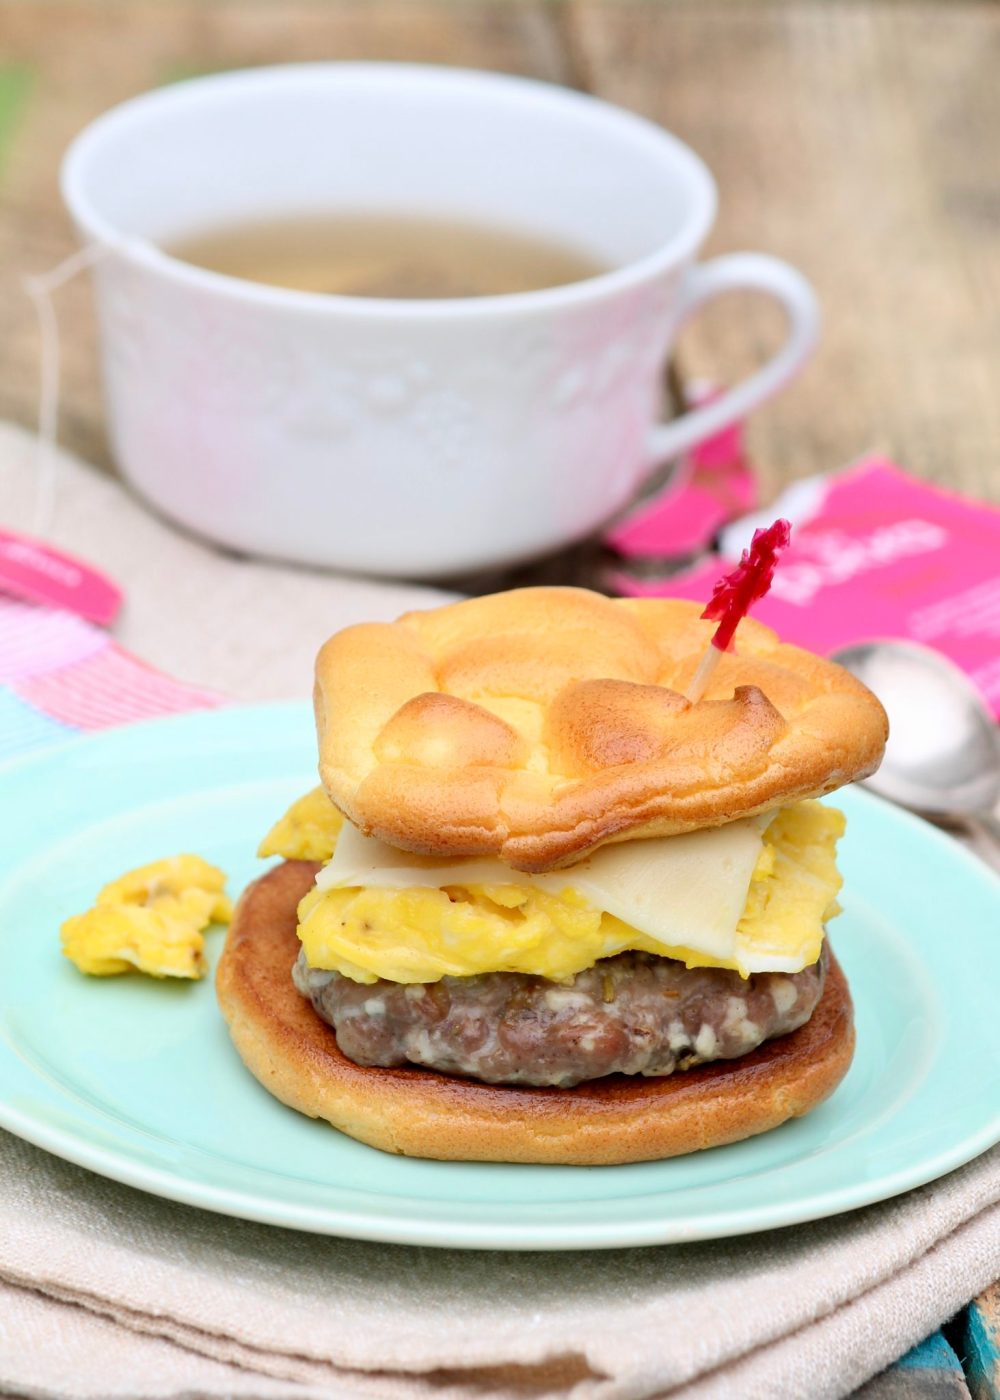 Low-Carb Egg & Sausage Sandwiches -Breakfast sandwiches are often high in carbs and fat, but with a few easy swaps they can be a healthy and totally satisfying start to the day.